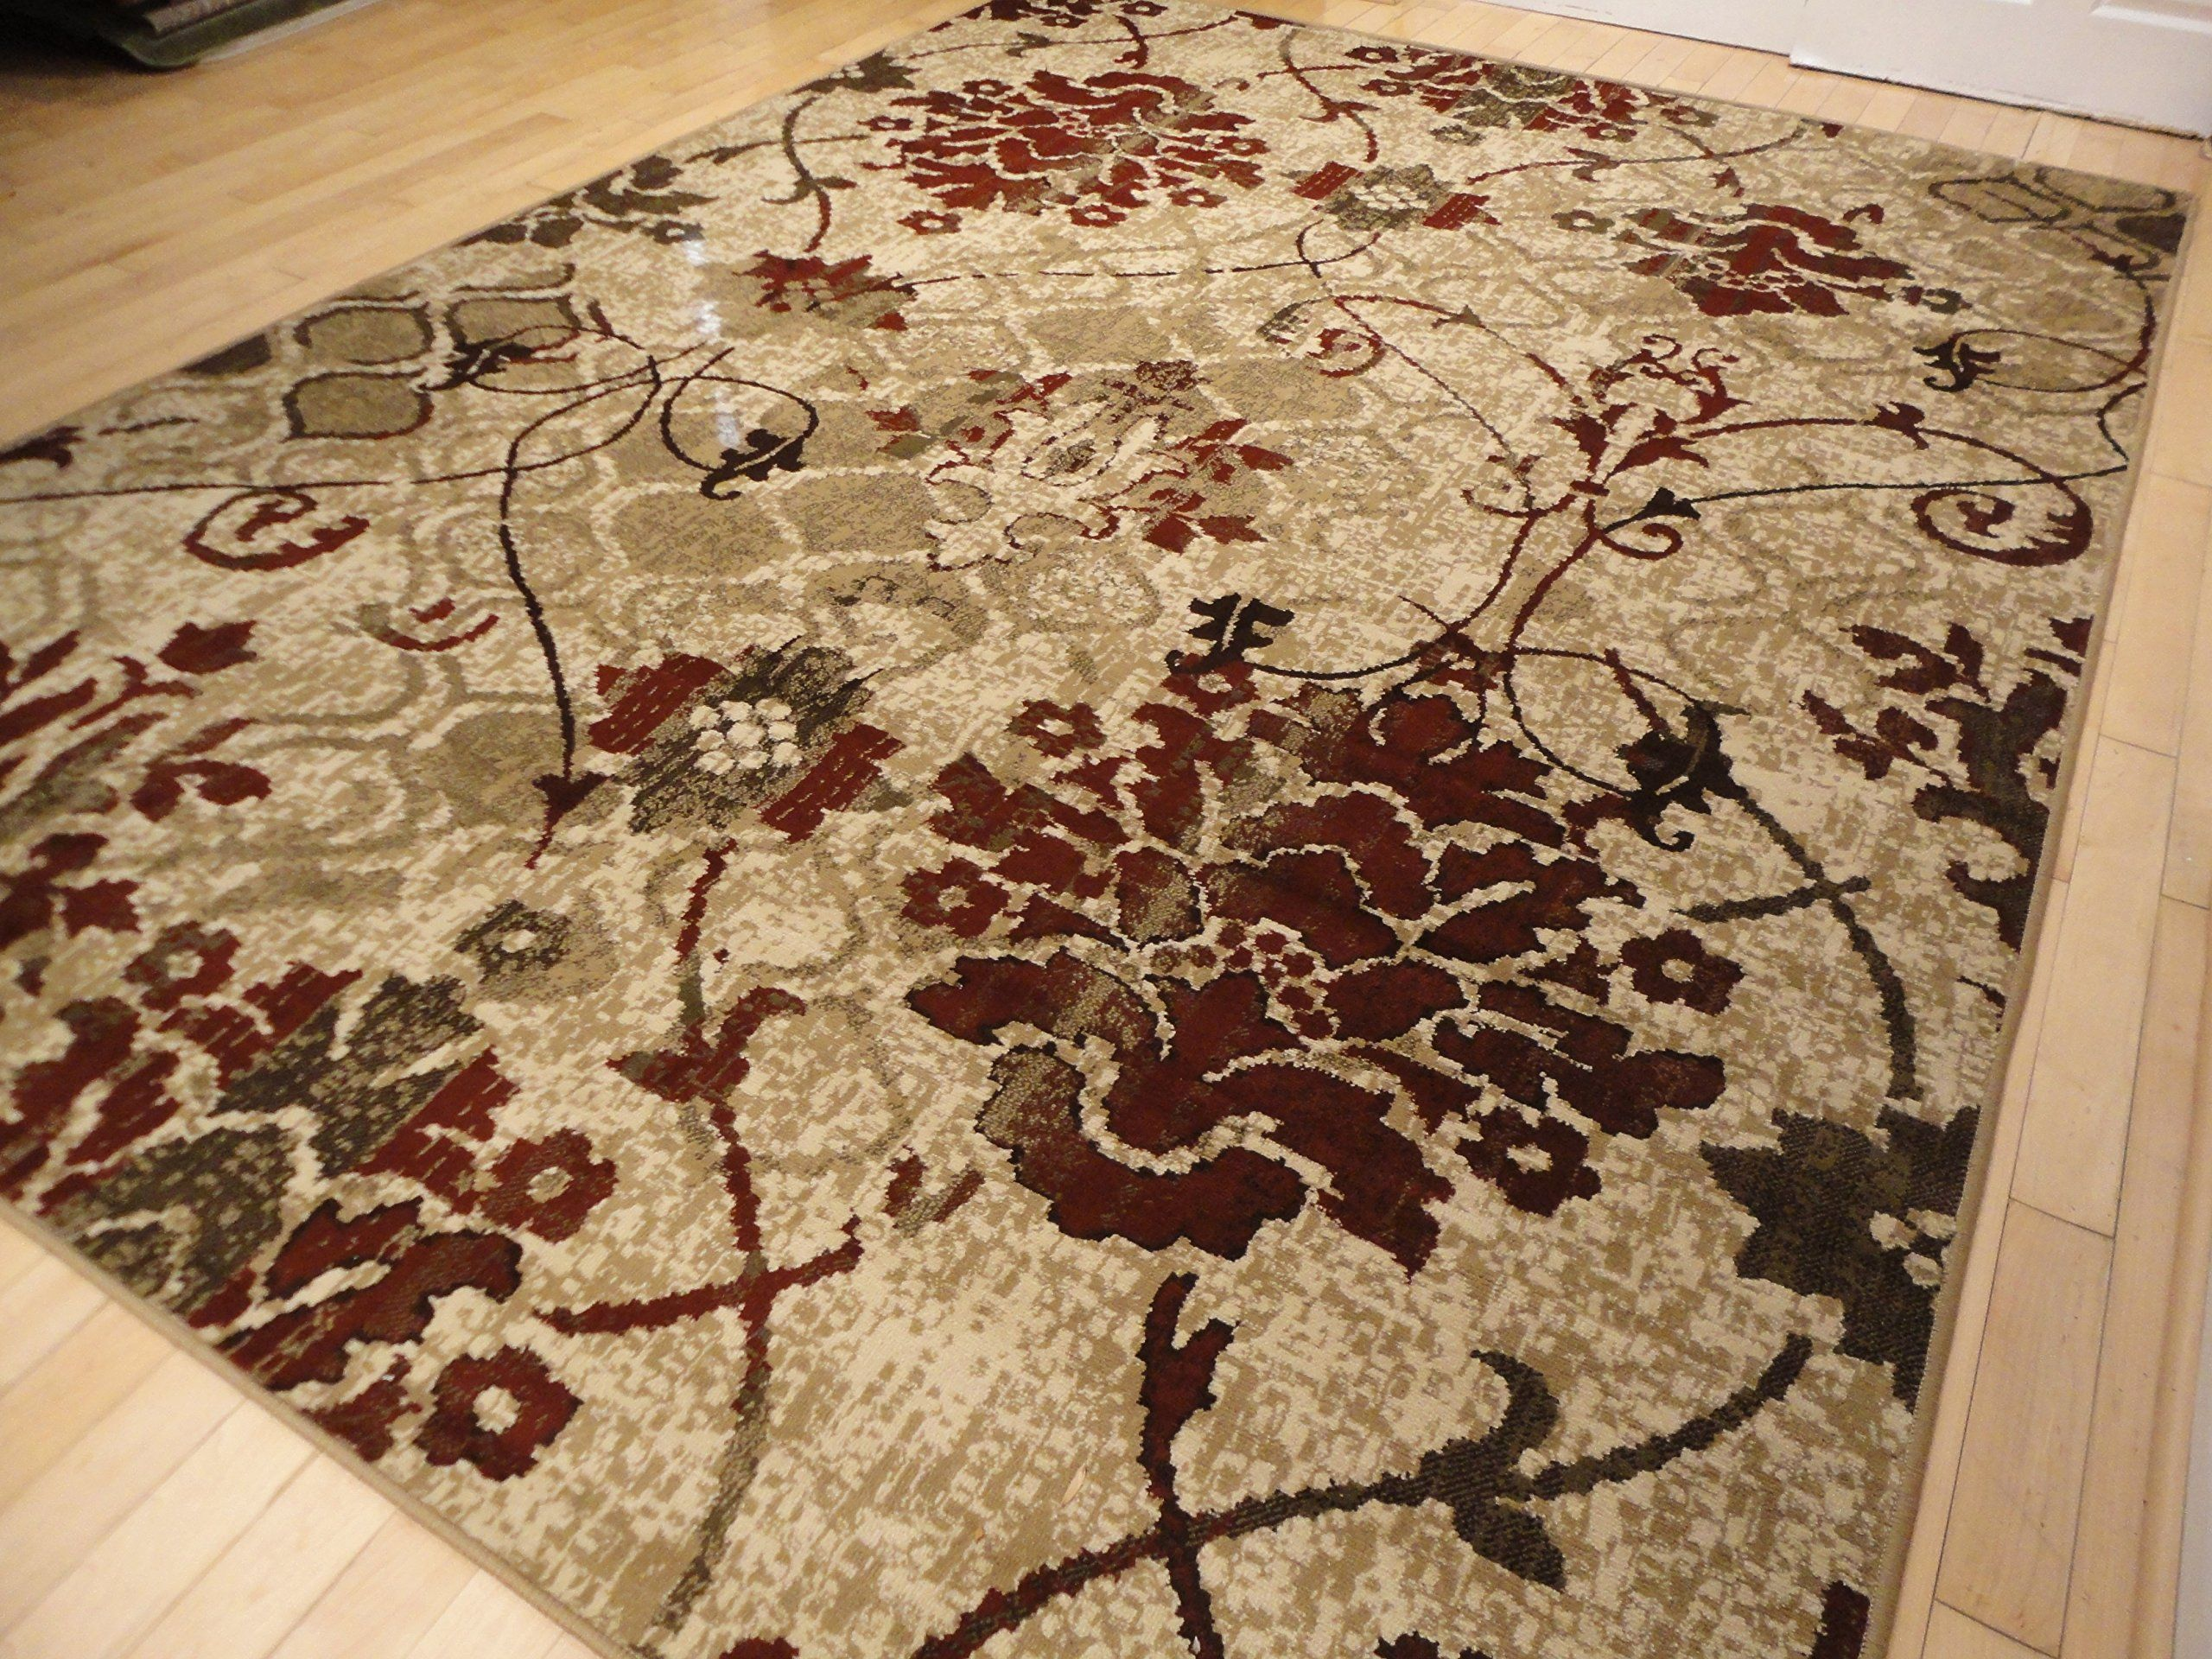 Modern Burgundy Rugs Living Dining Room Red Cream Beige Area 8x10 Clearance Contemporary 8x11 Rug